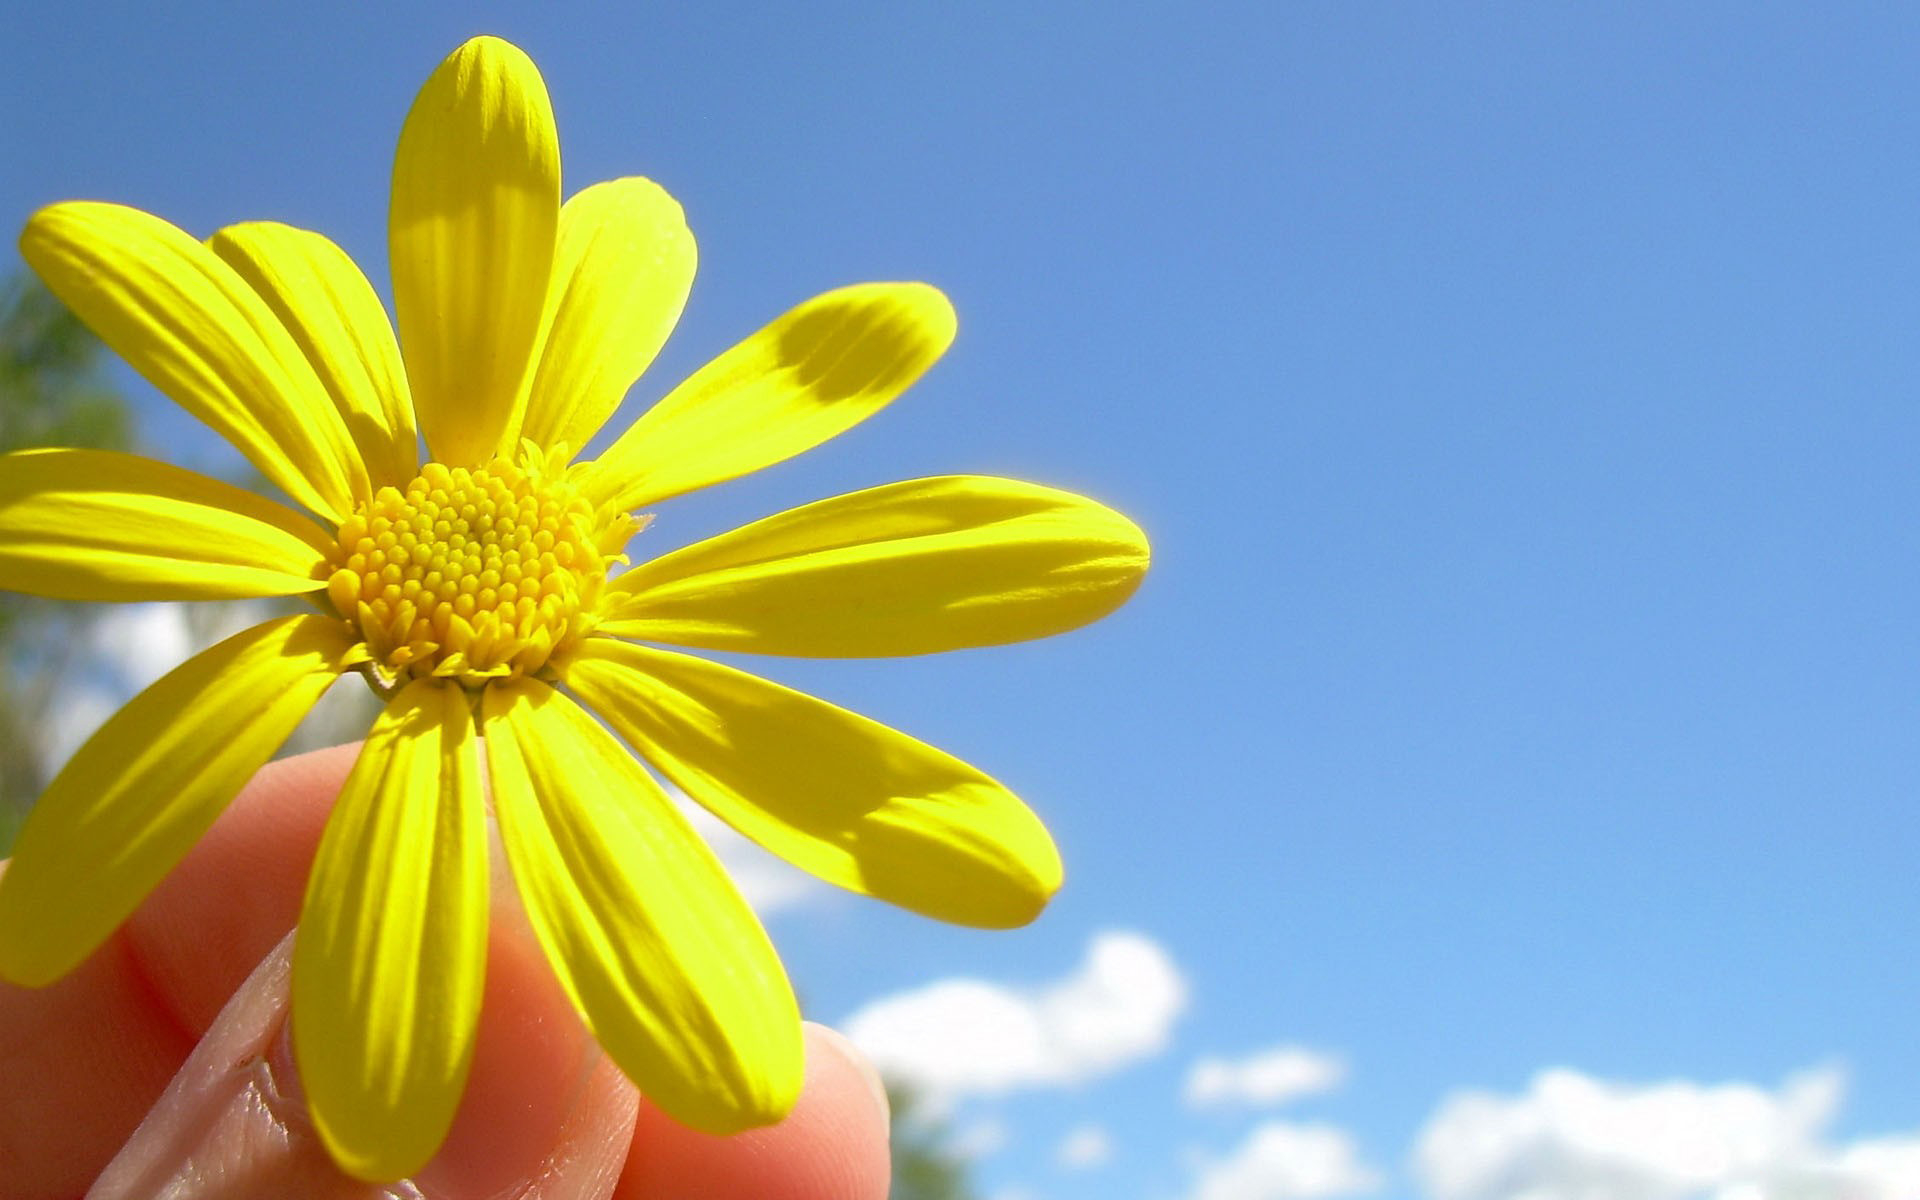 Sunny flower wallpapers and images - wallpapers, pictures, photos